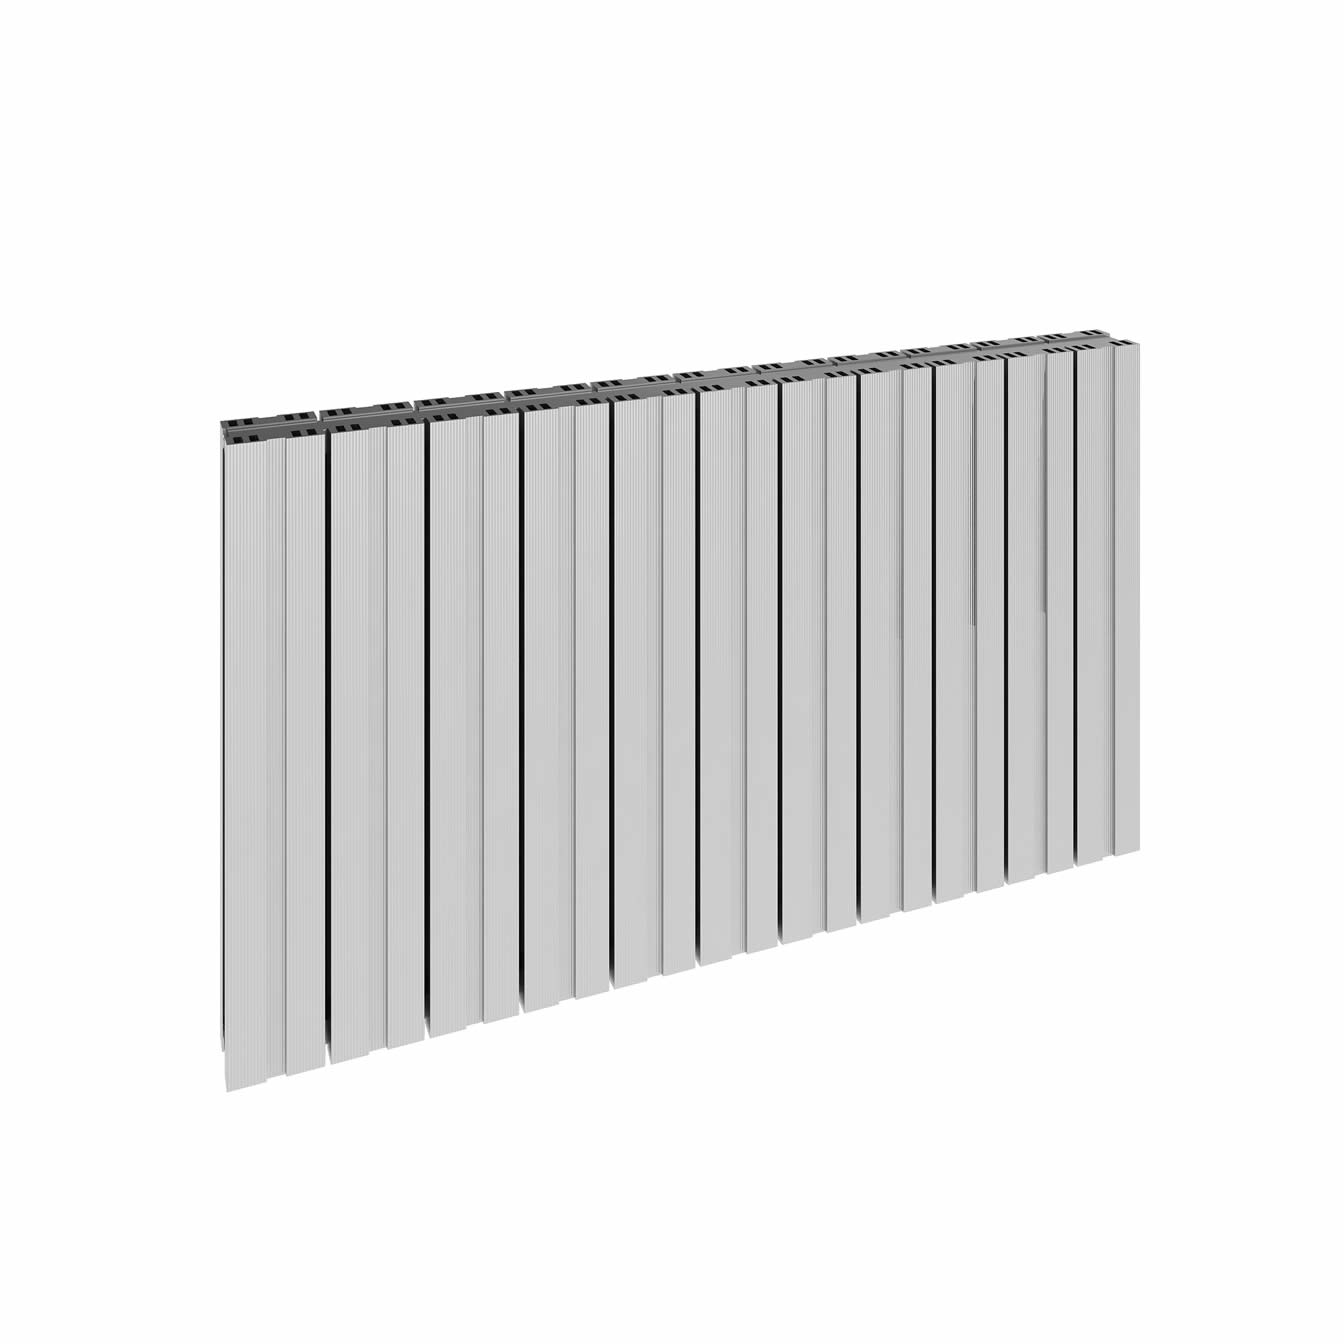 BOVA 600 x 470 POLISHED DOUBLE PANEL HORIZONTAL ALUMINIUM RADIATOR